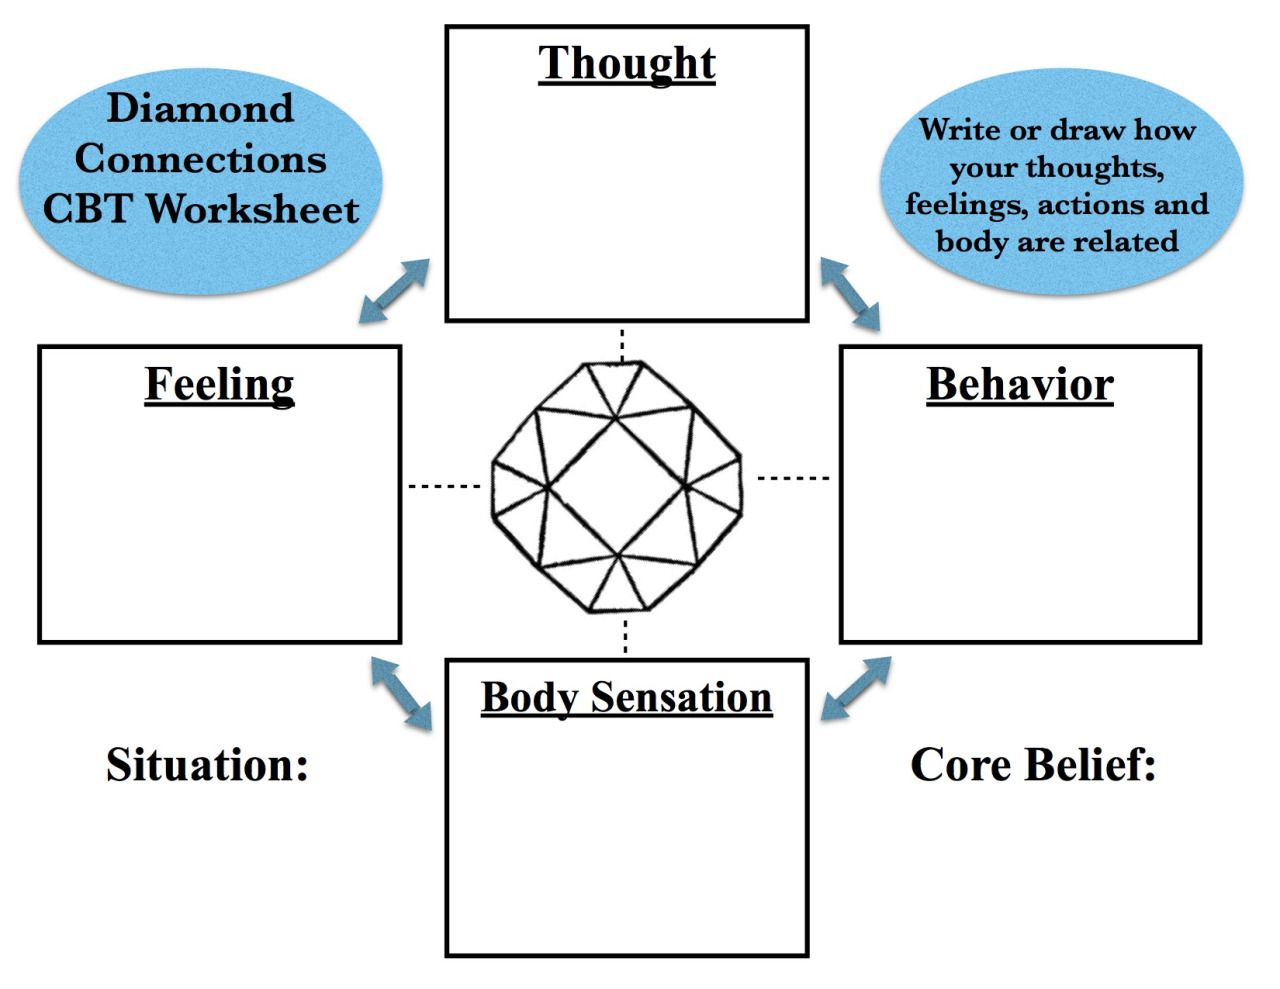 Cbt Diamond Connections Worksheet This Is Essentially A Cbt Triangle That Also Includes A